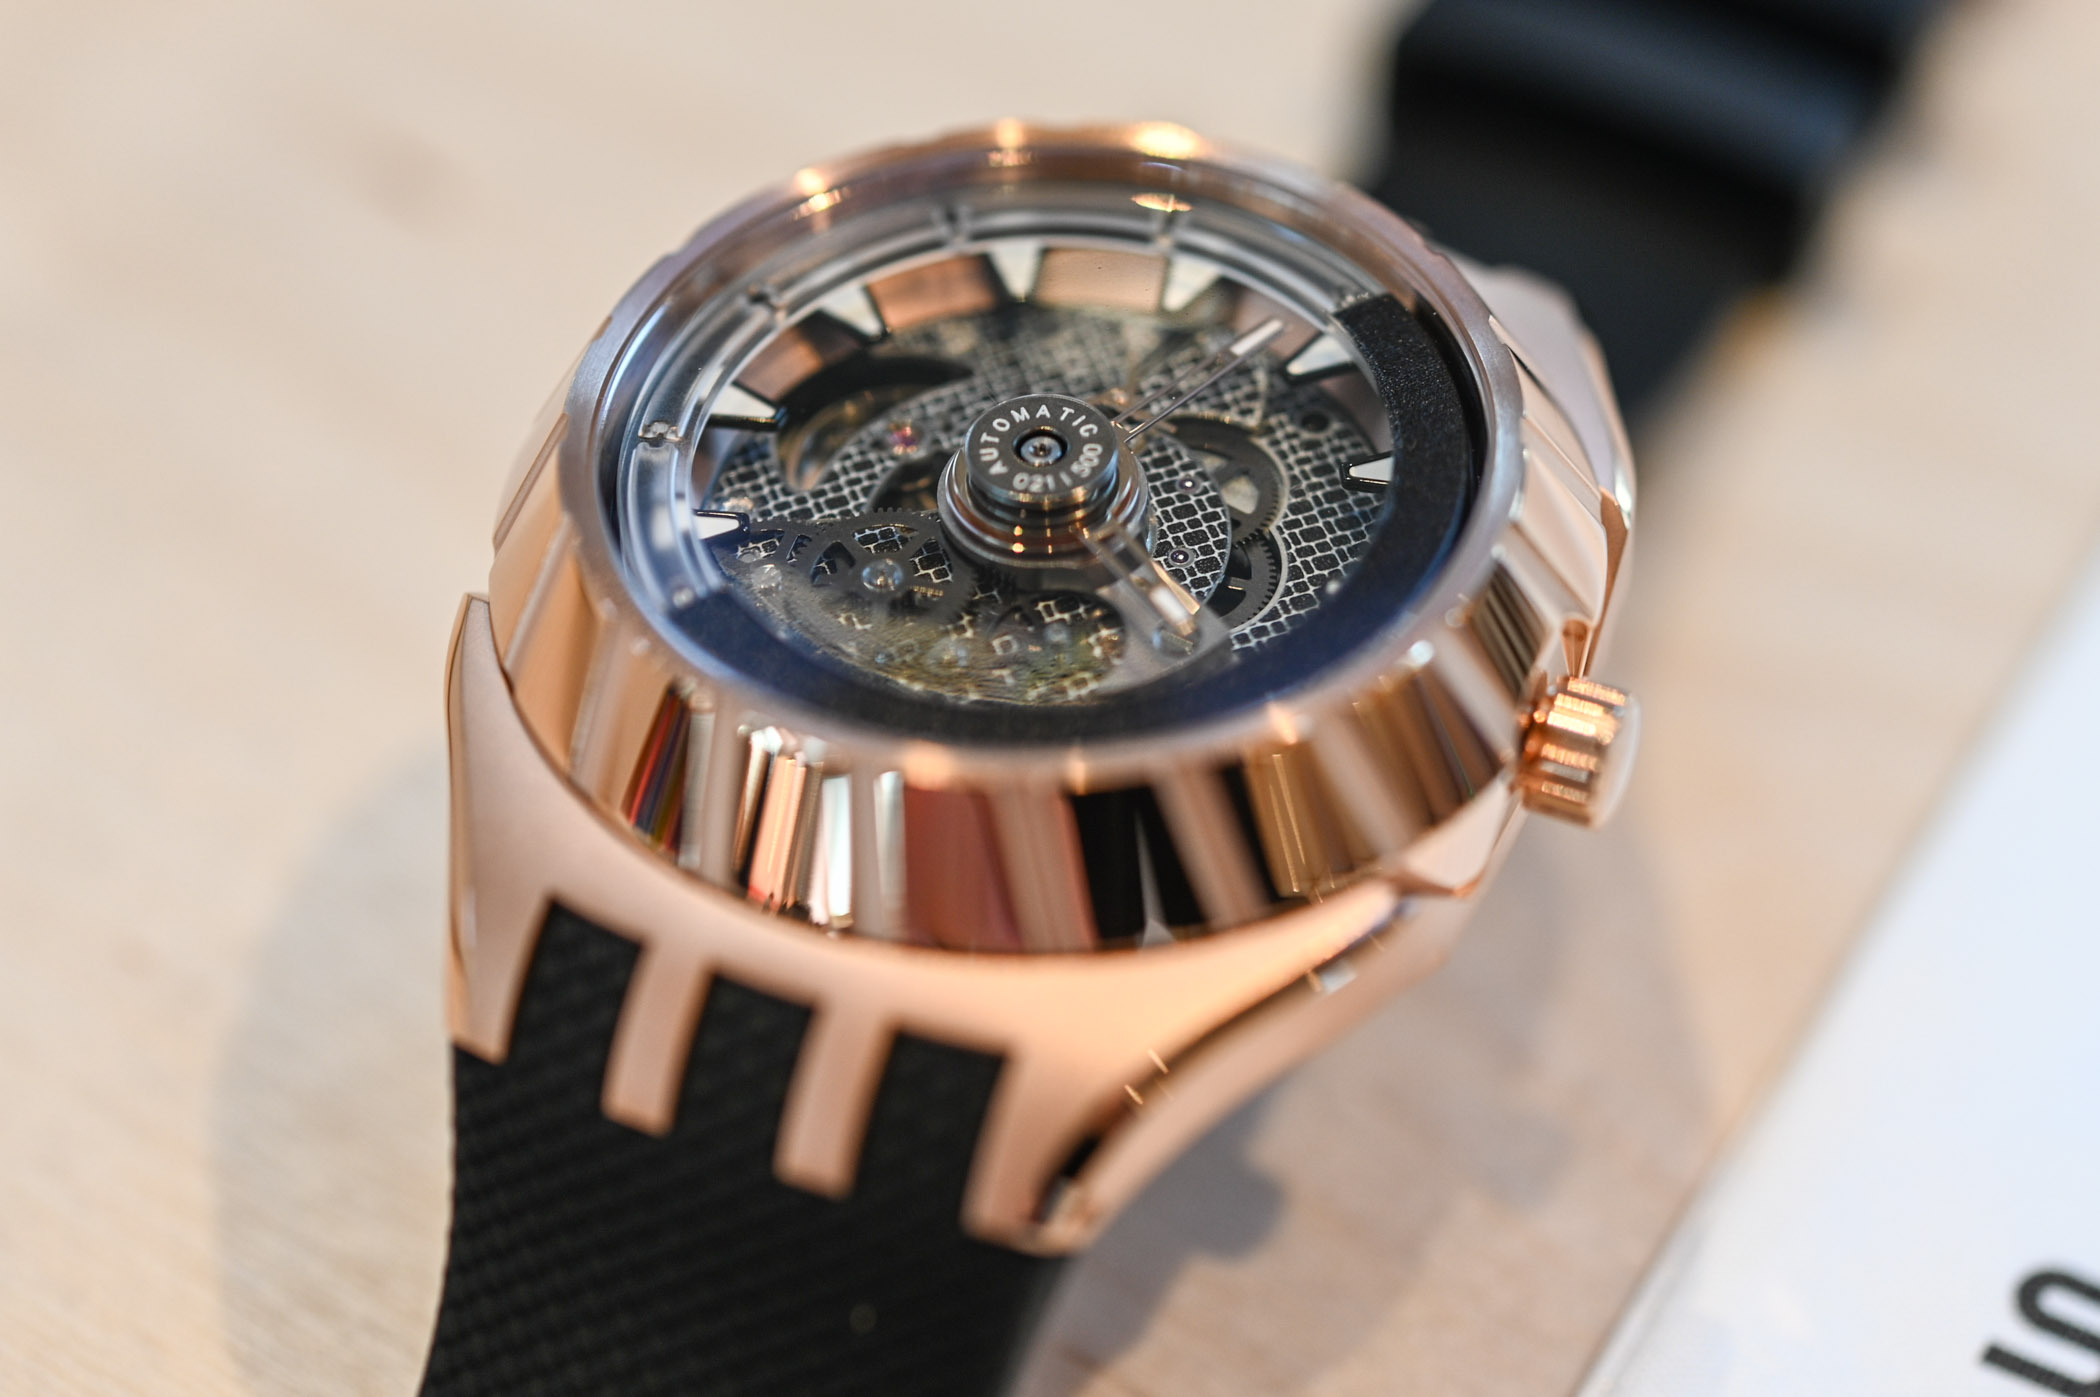 Swatch Flymagic First Watch with Nivachron Hairspring - 42